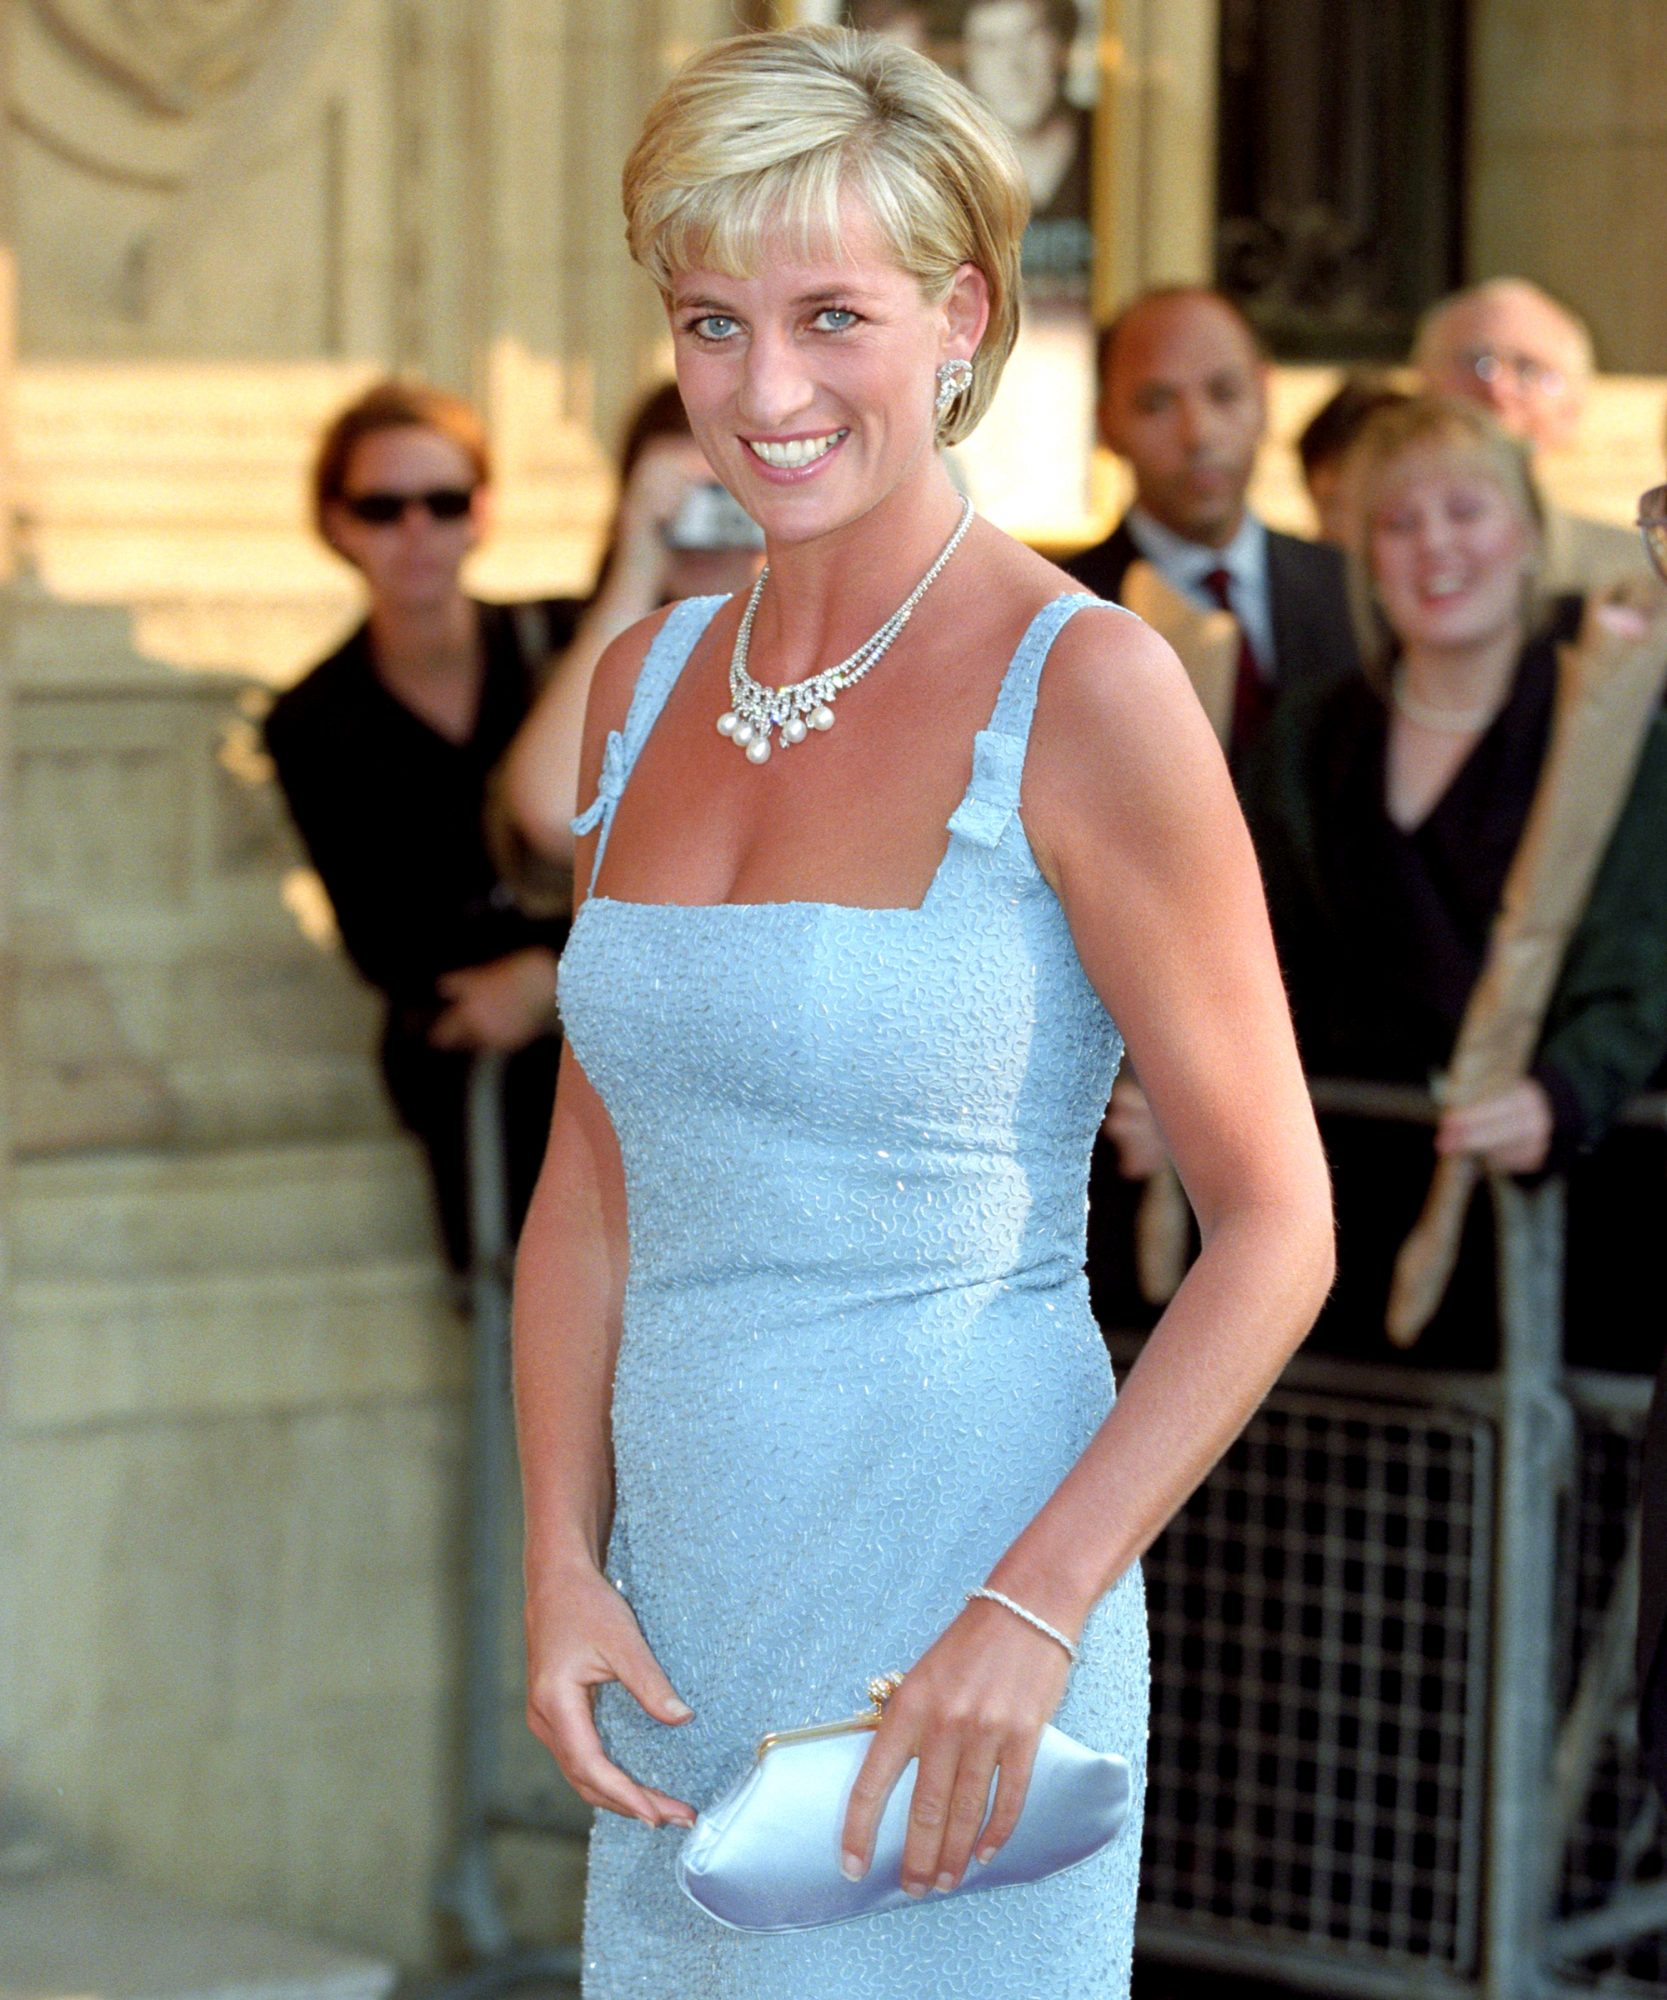 Princess Diana's Stunning <em>Swan Lake</em> Necklace Goes on Sale for $12 Million